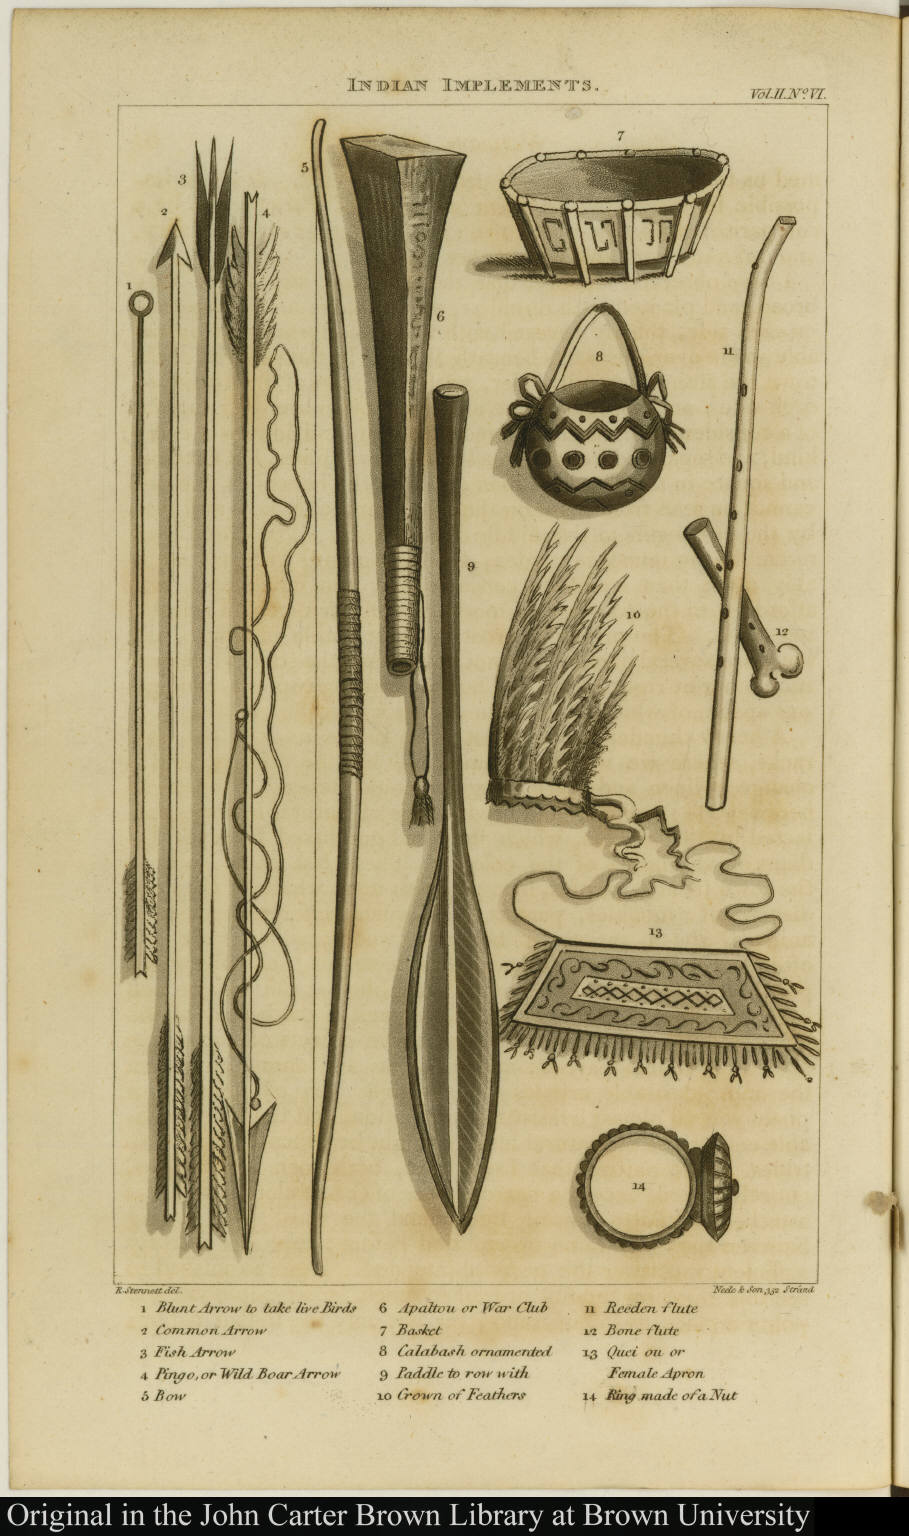 Indian implements.